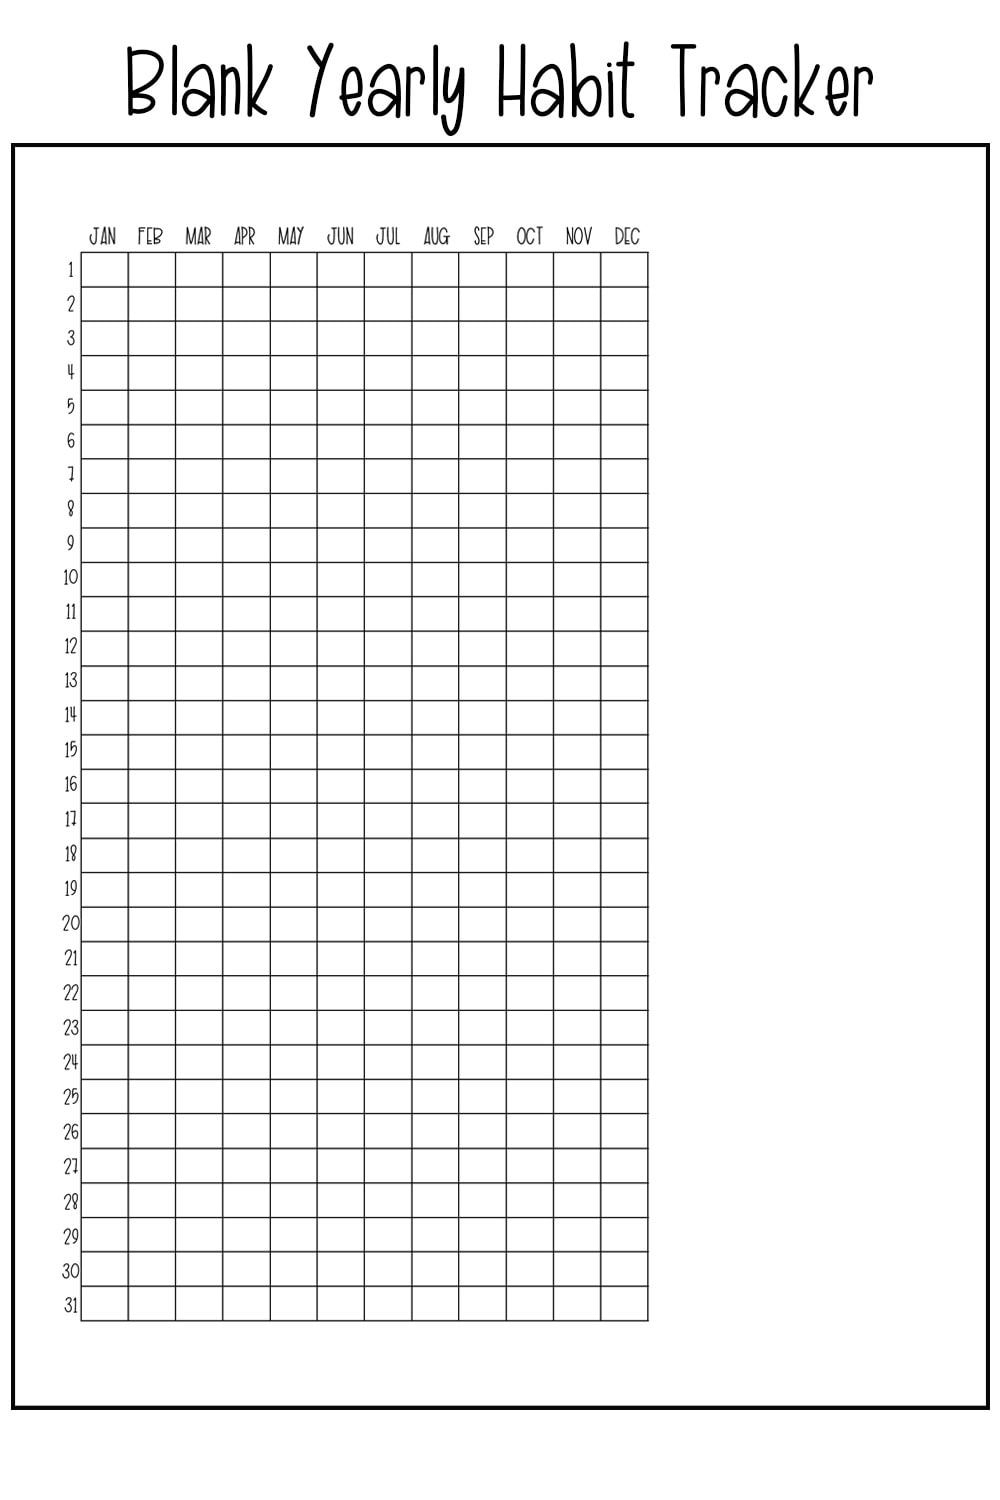 Yearly Habit Tracker Free Printable Track A Habit All Year Long Habit Tracker Bullet Journal Bullet Journal Habit Tracker Printable Habit Tracker Printable